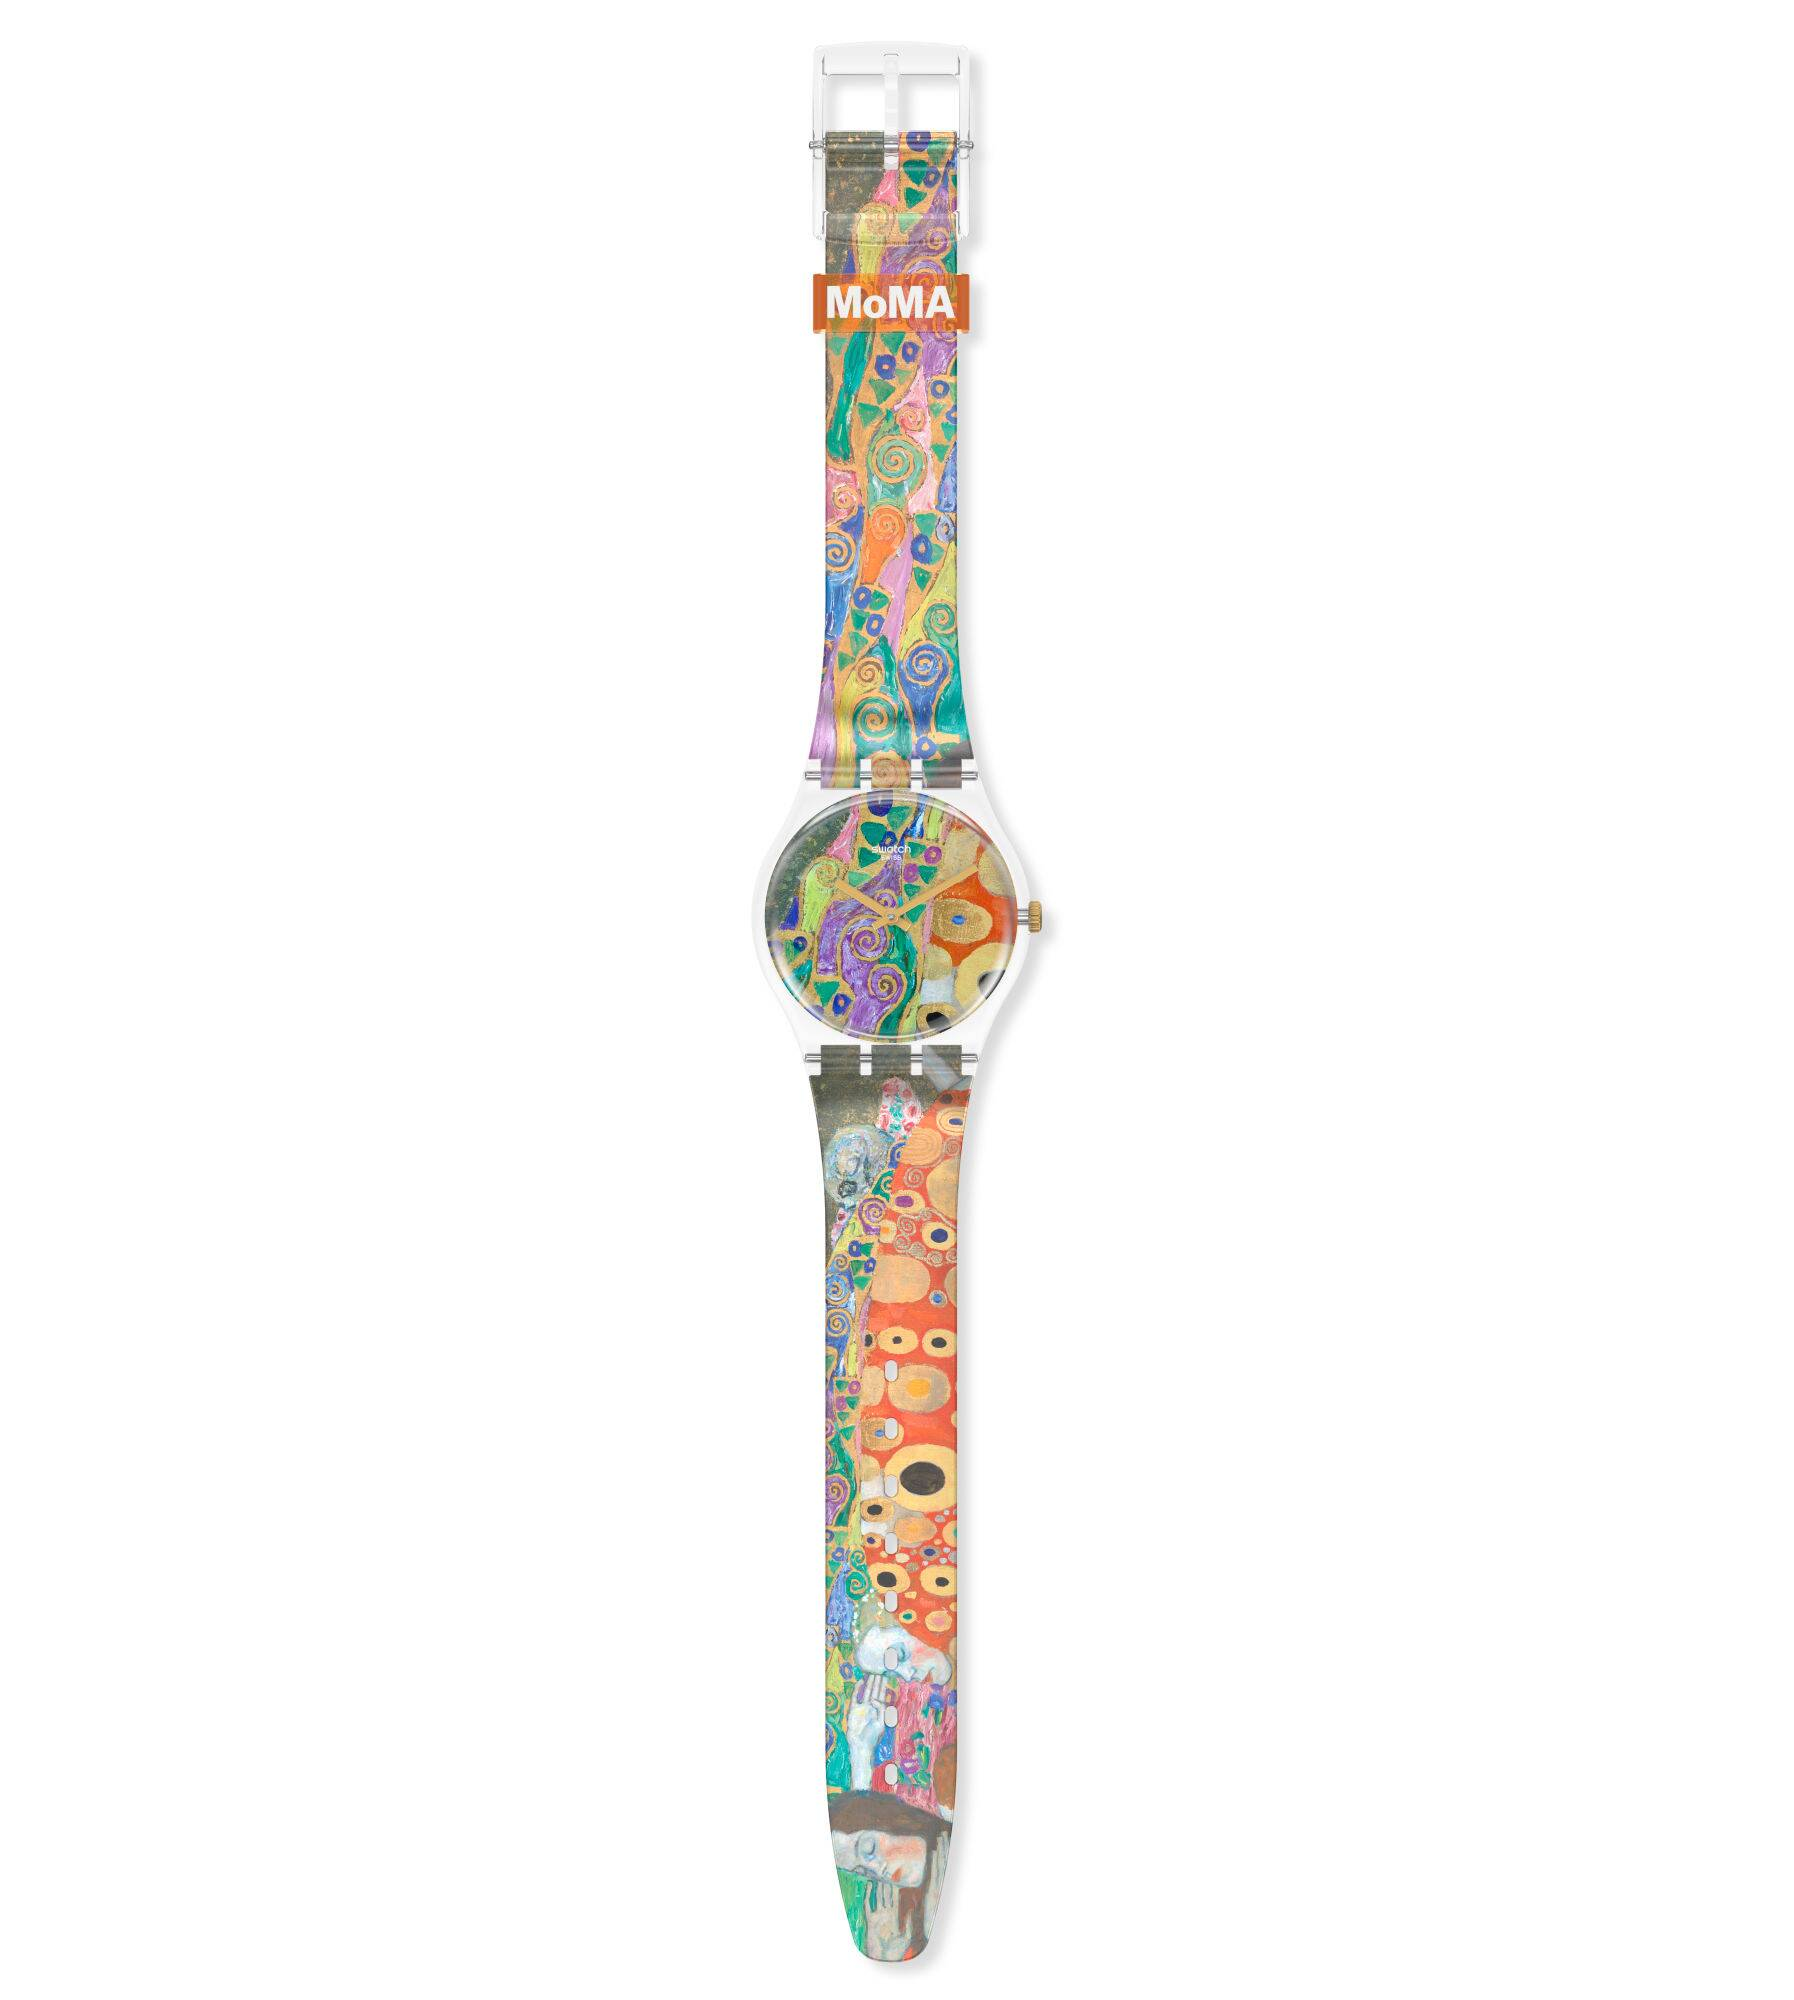 HOPE, II BY GUSTAV KLIMT, THE WATCH